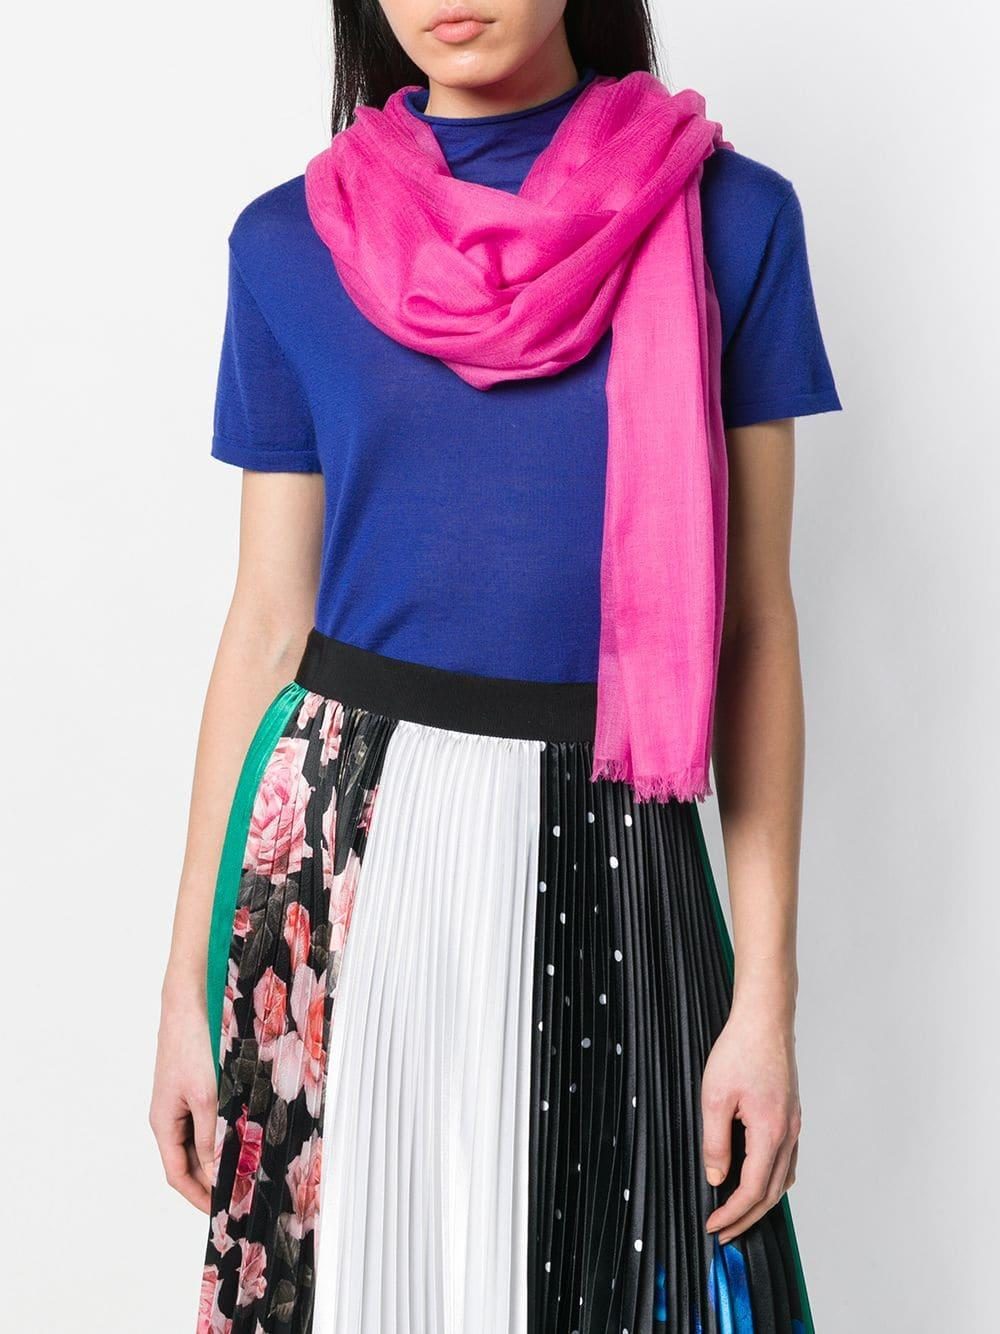 0268bc3fa N.Peal Cashmere Ultrafine Pashmina Shawl in Pink - Lyst